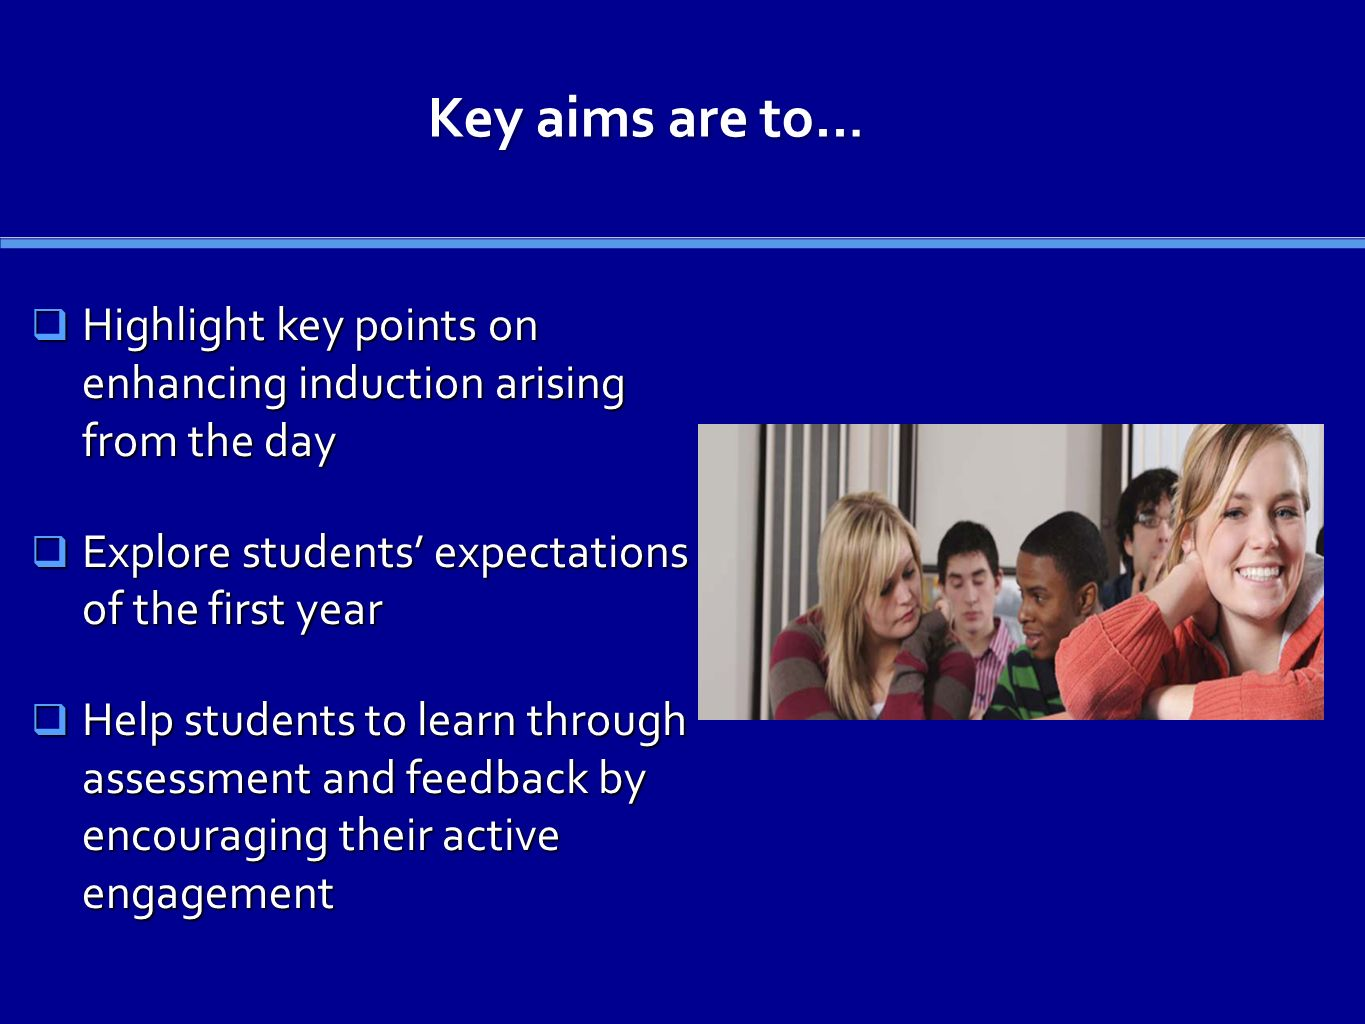 Key aims are to...